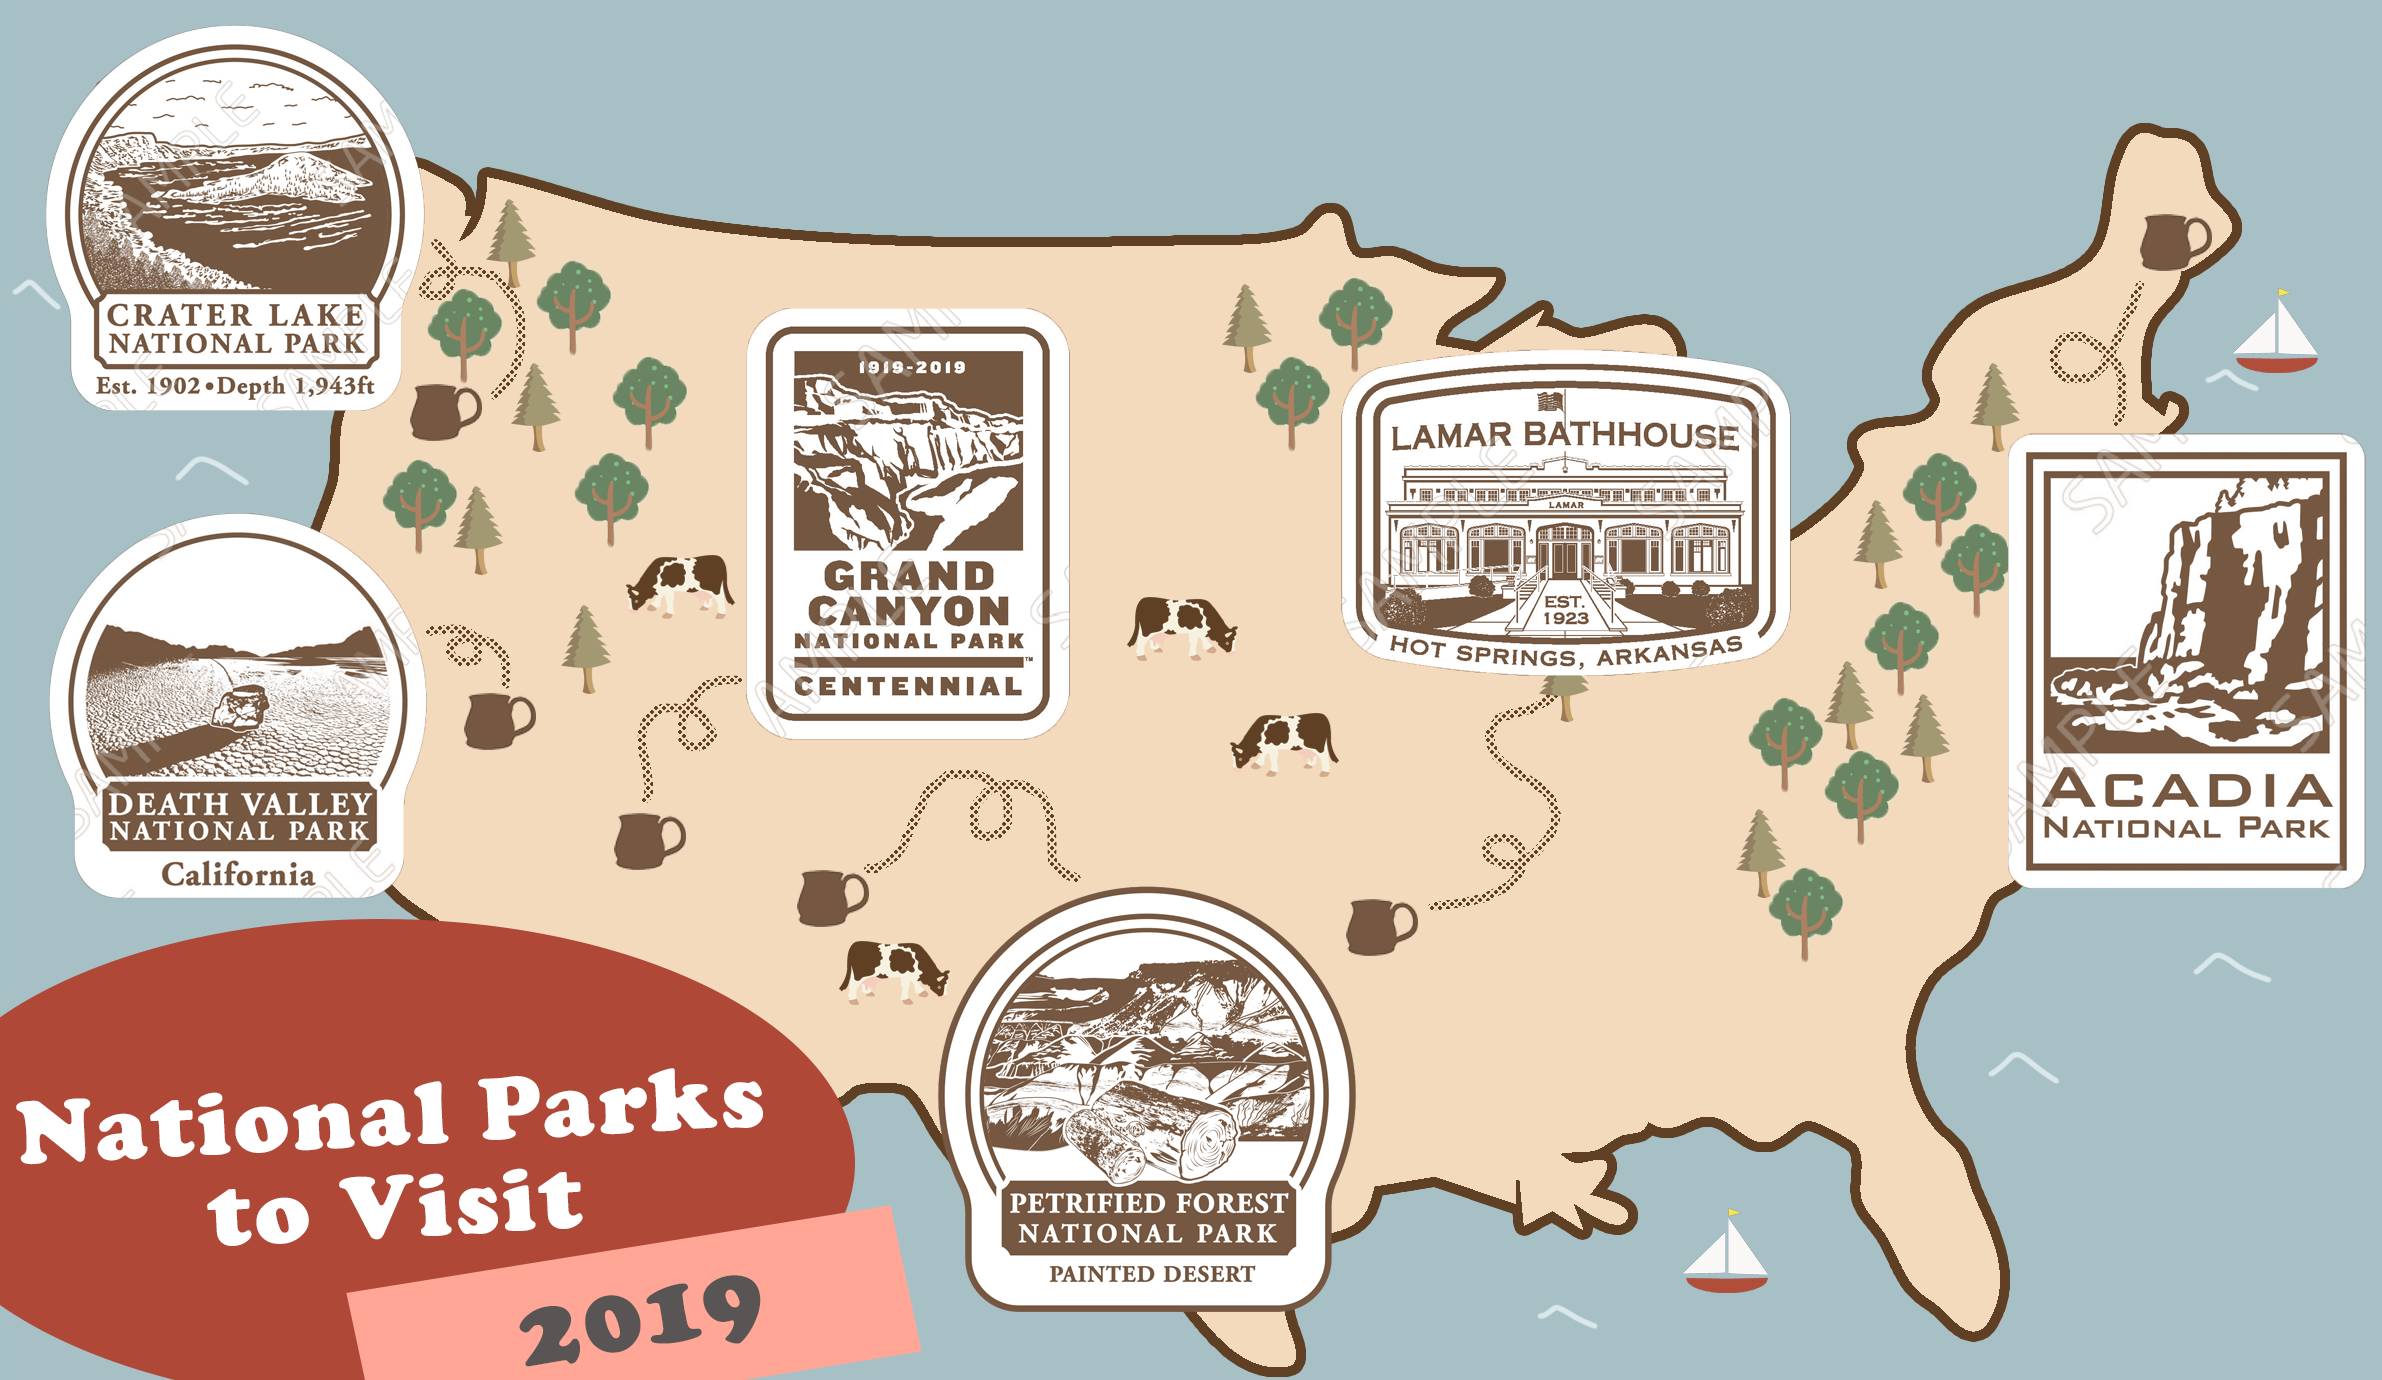 National Parks to Visit in 2019